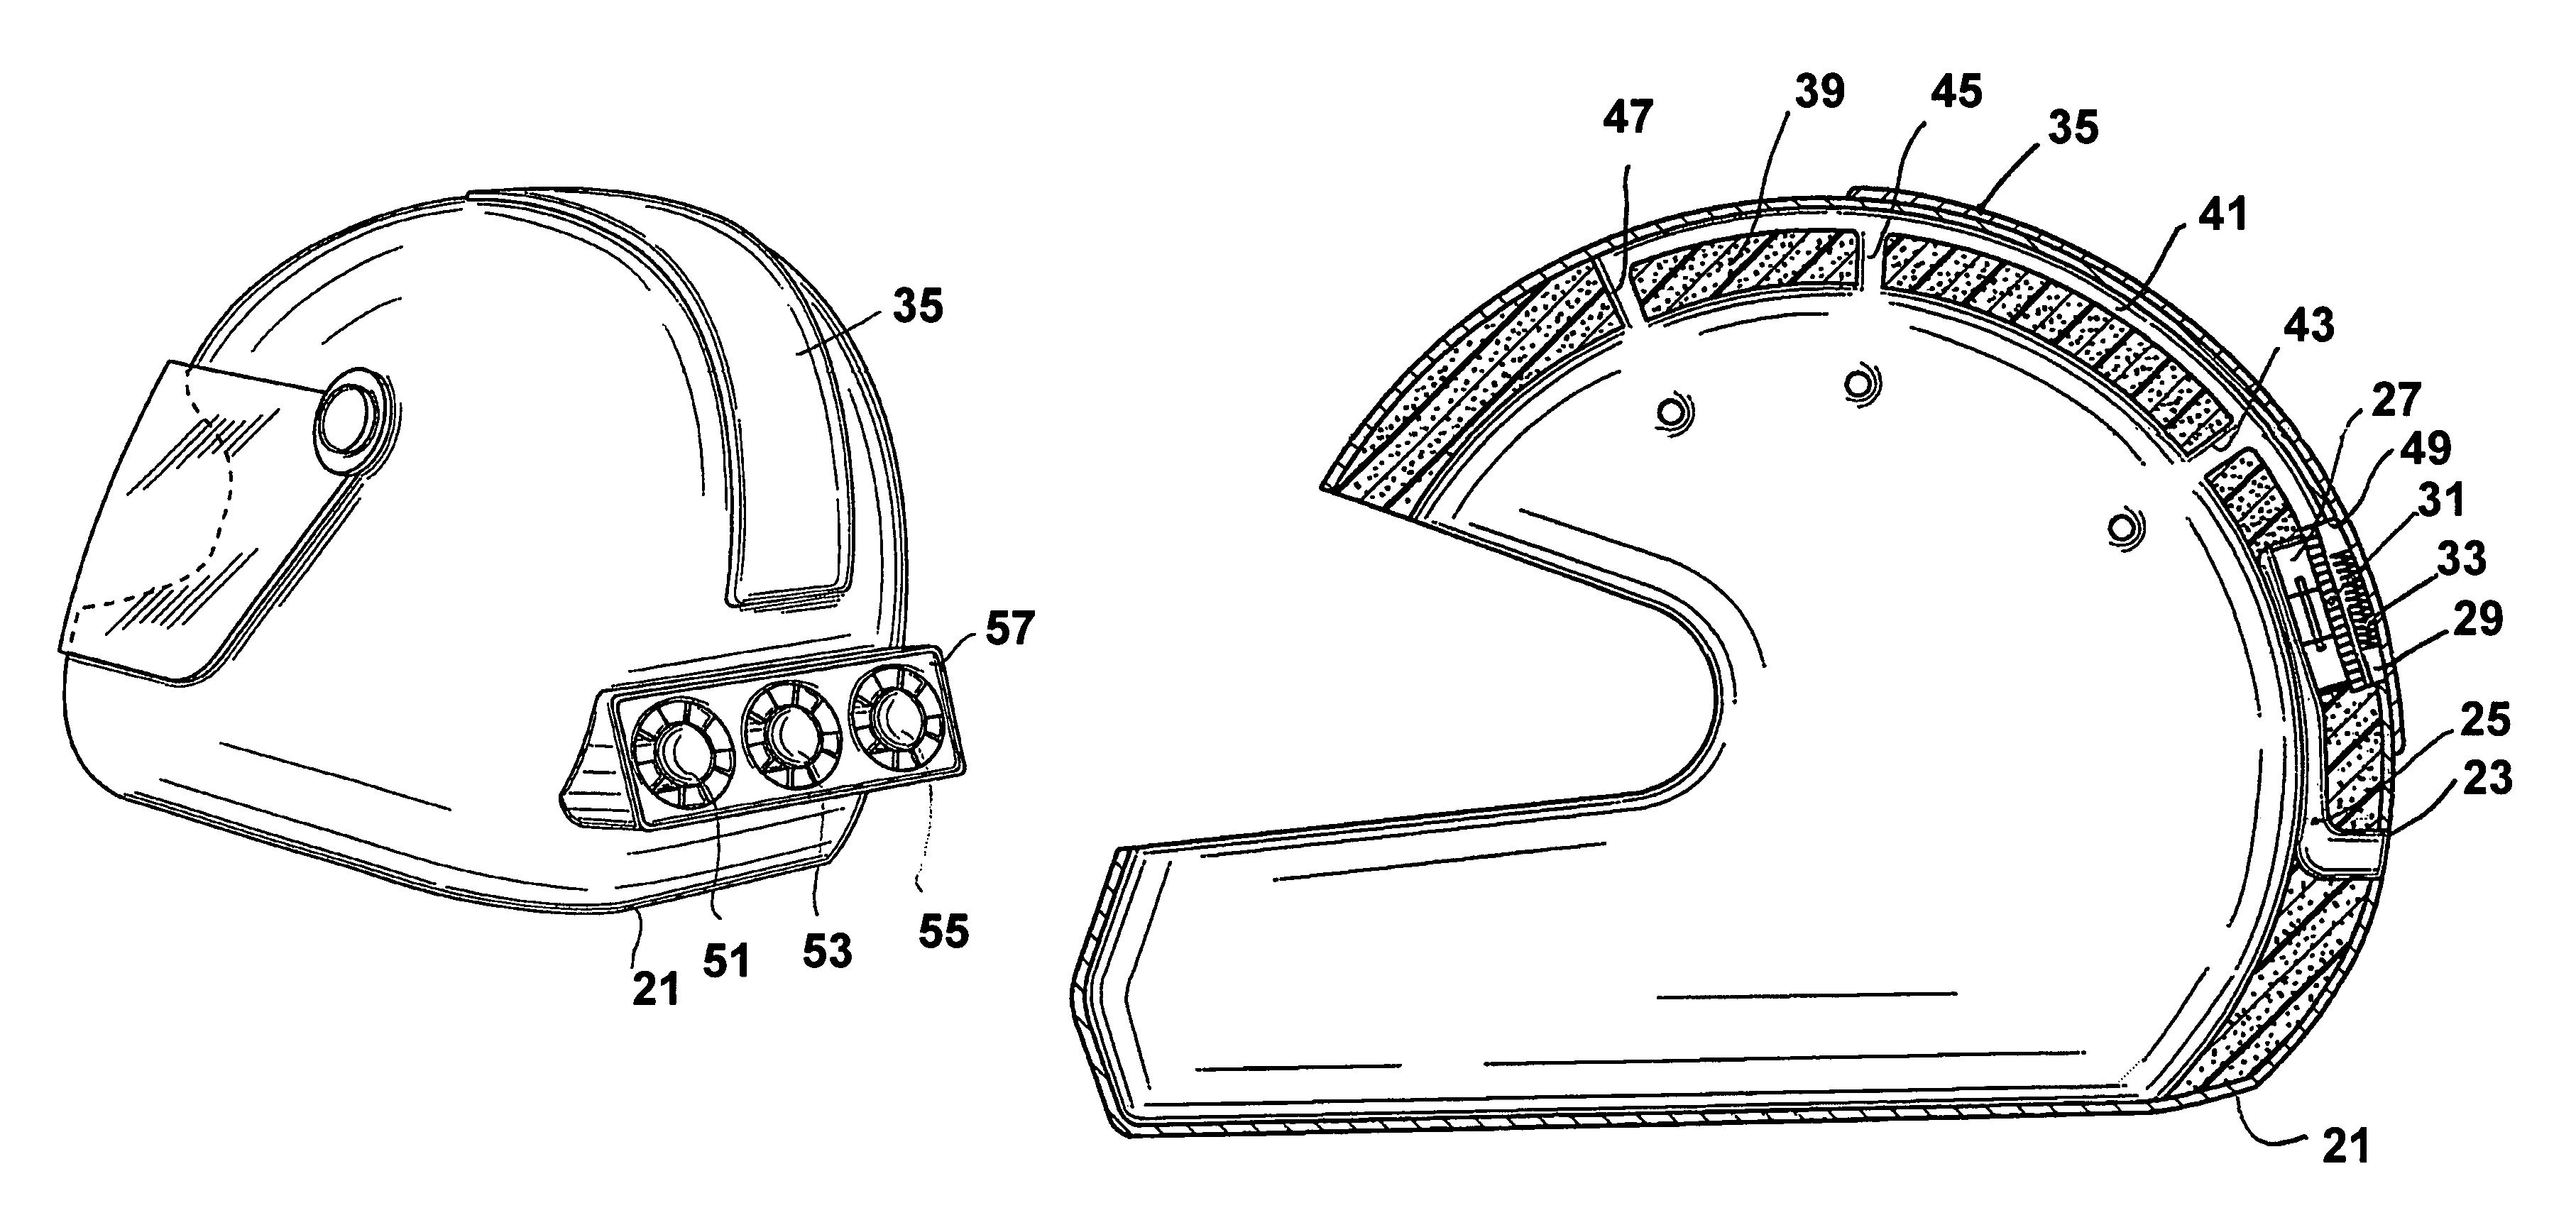 Patent Us7296304 Crash Helmet With Thermoelectric